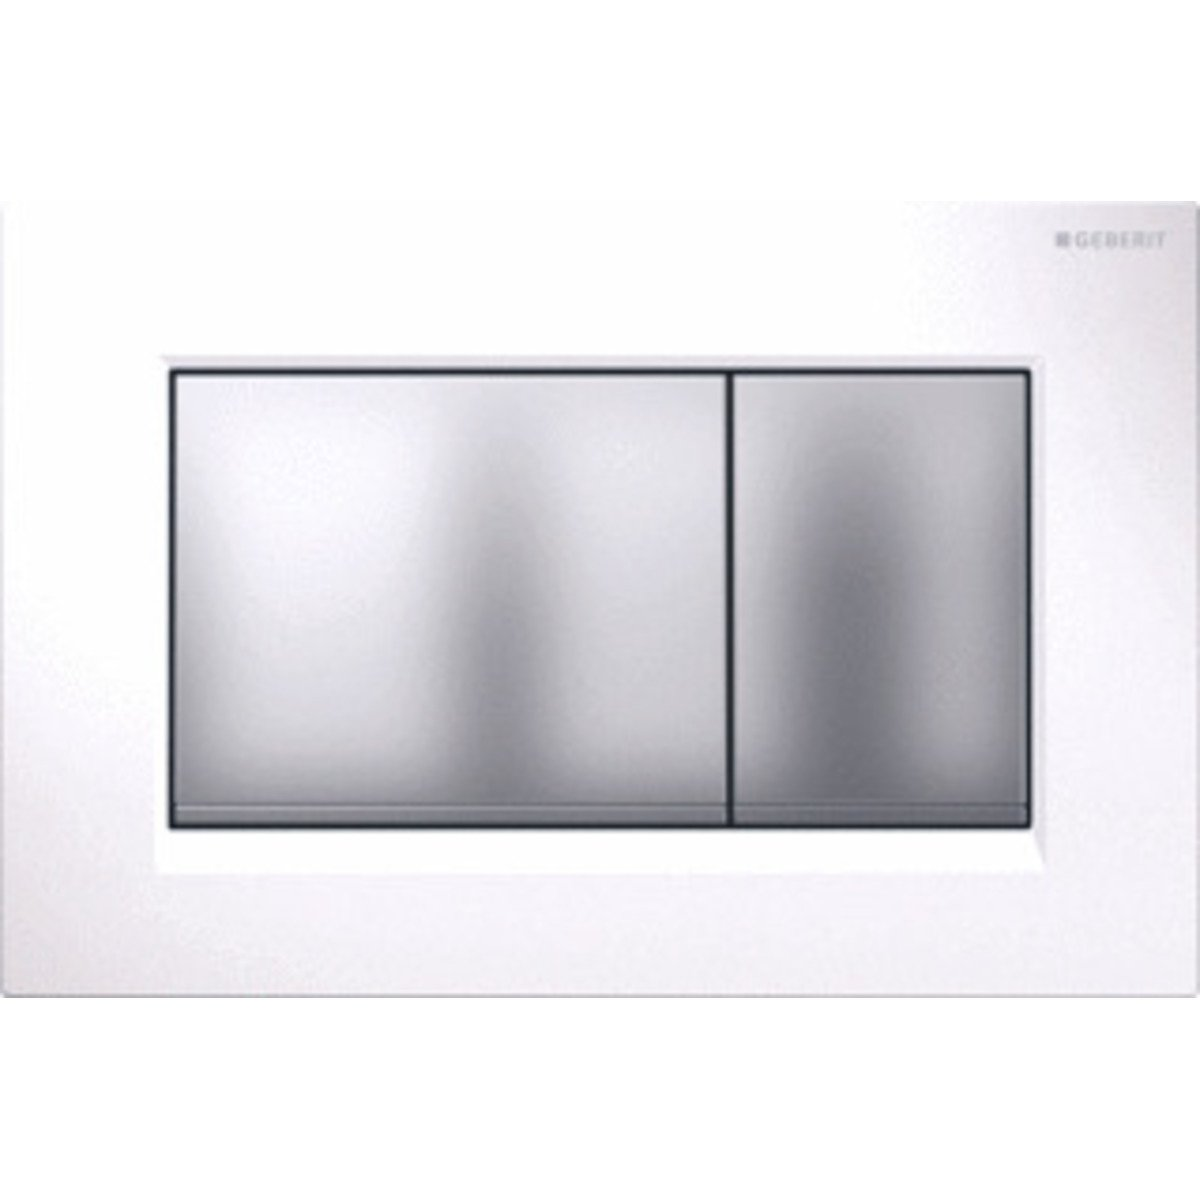 Geberit sigma 30 bedieningsplaat sigma 30 df frontbediend for Geberit products